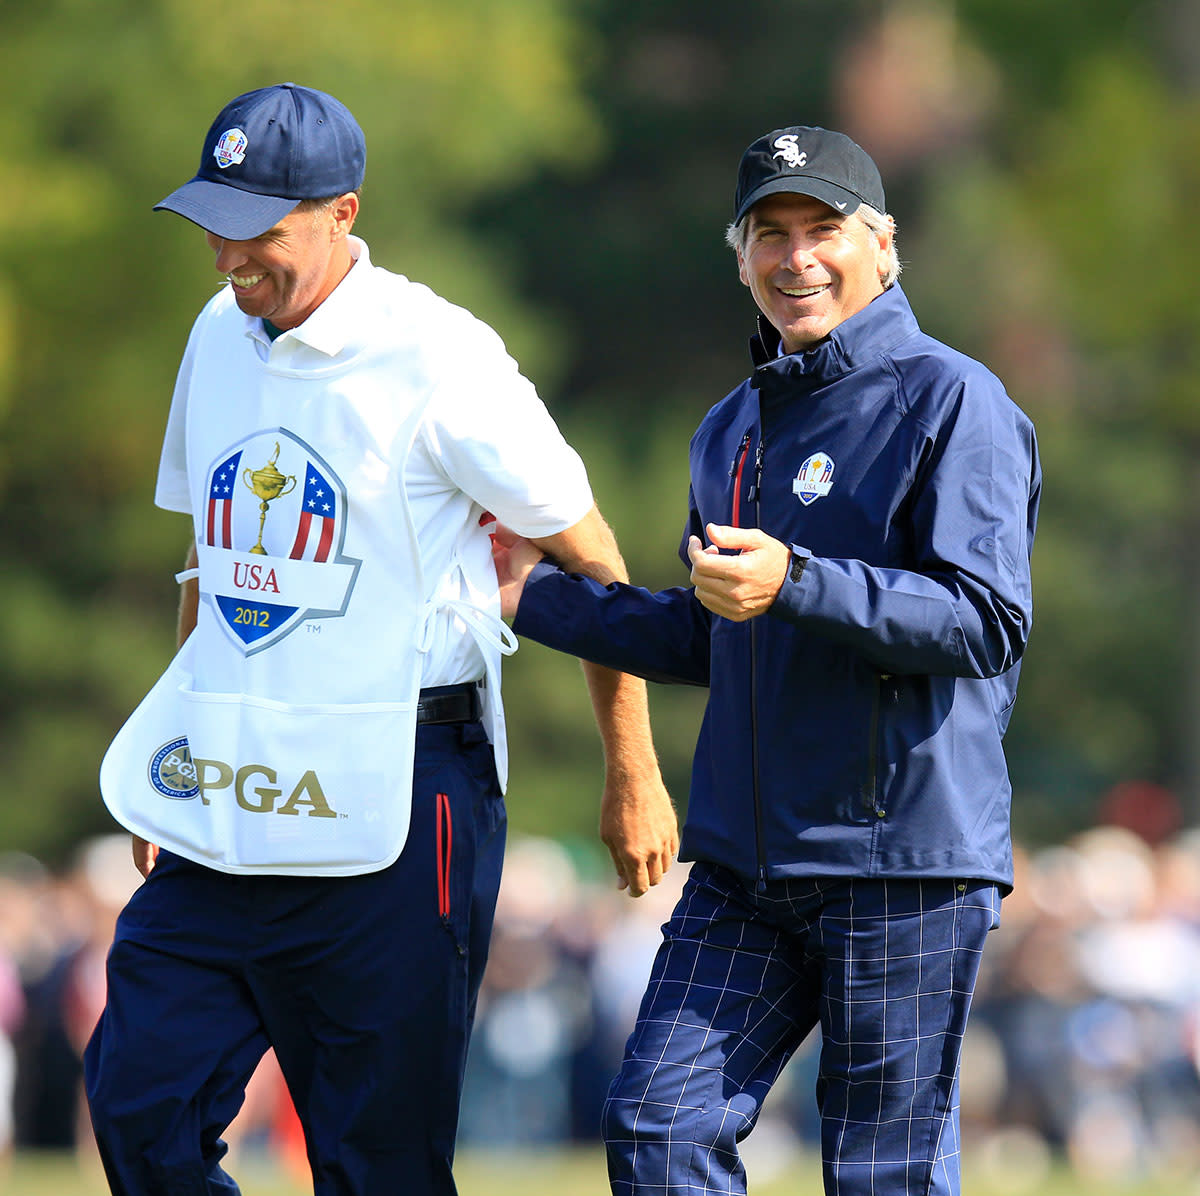 """Fred Couples (right) and Jim """"Bones"""" Mackay at the 2012 Ryder Cup."""